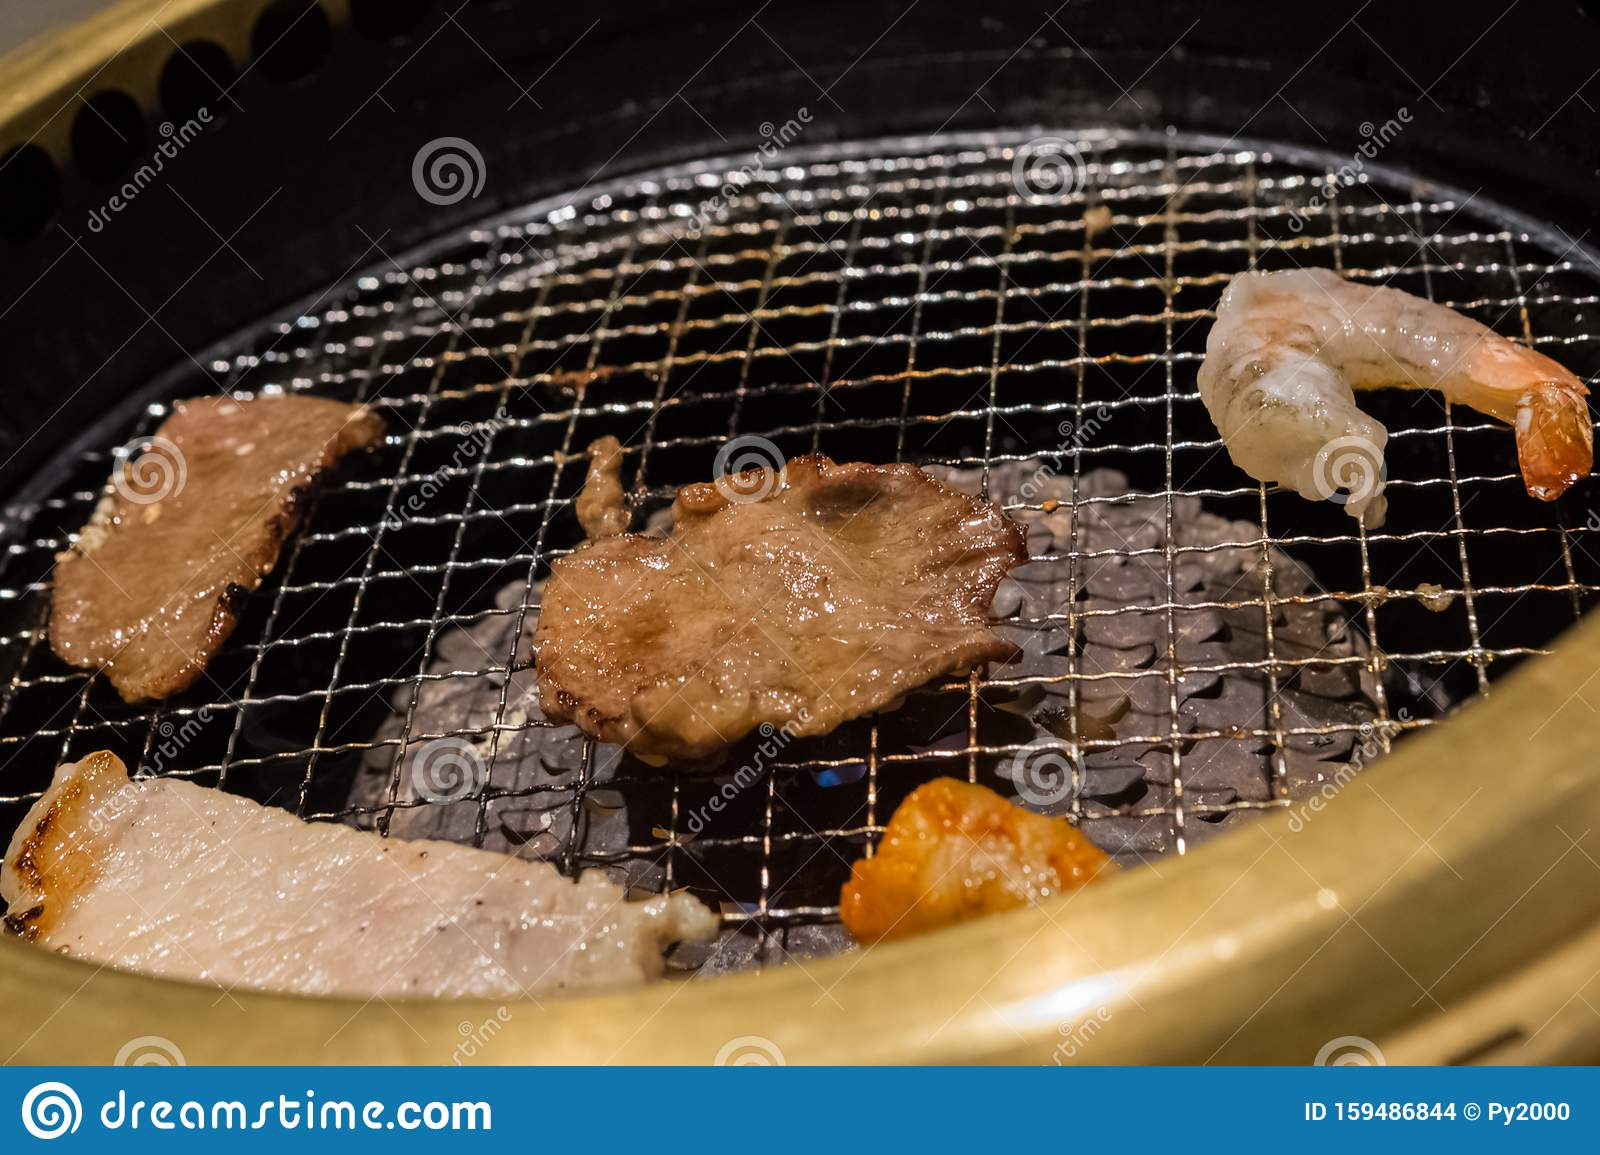 Japanese Grill Barbecue With Meat And Shrimp Stock Photo Image Of Restaurant Cooked 159486844